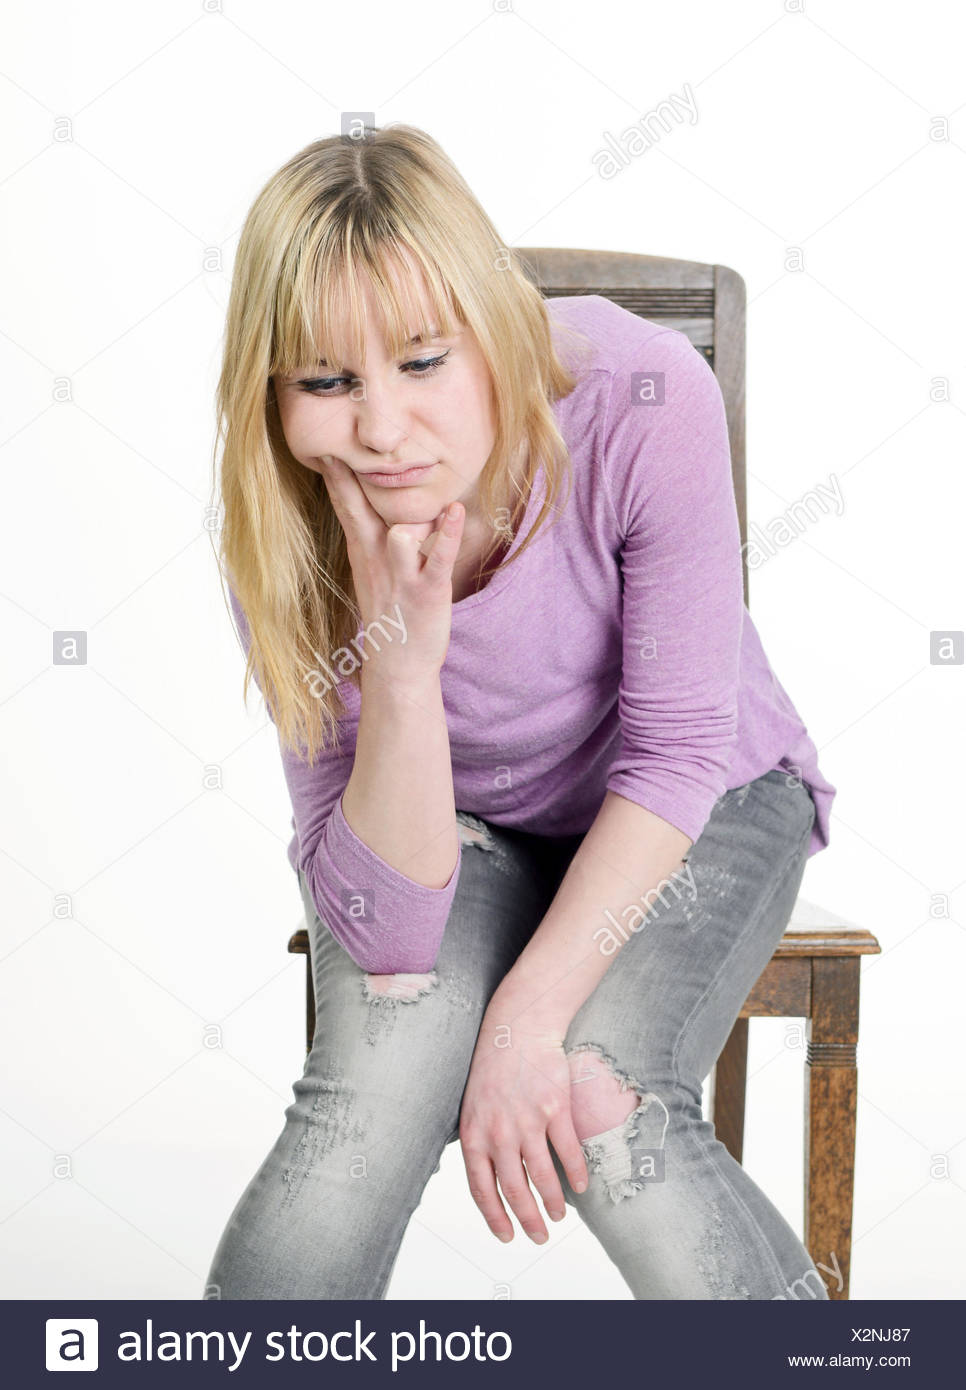 unhappy young woman - Stock Image